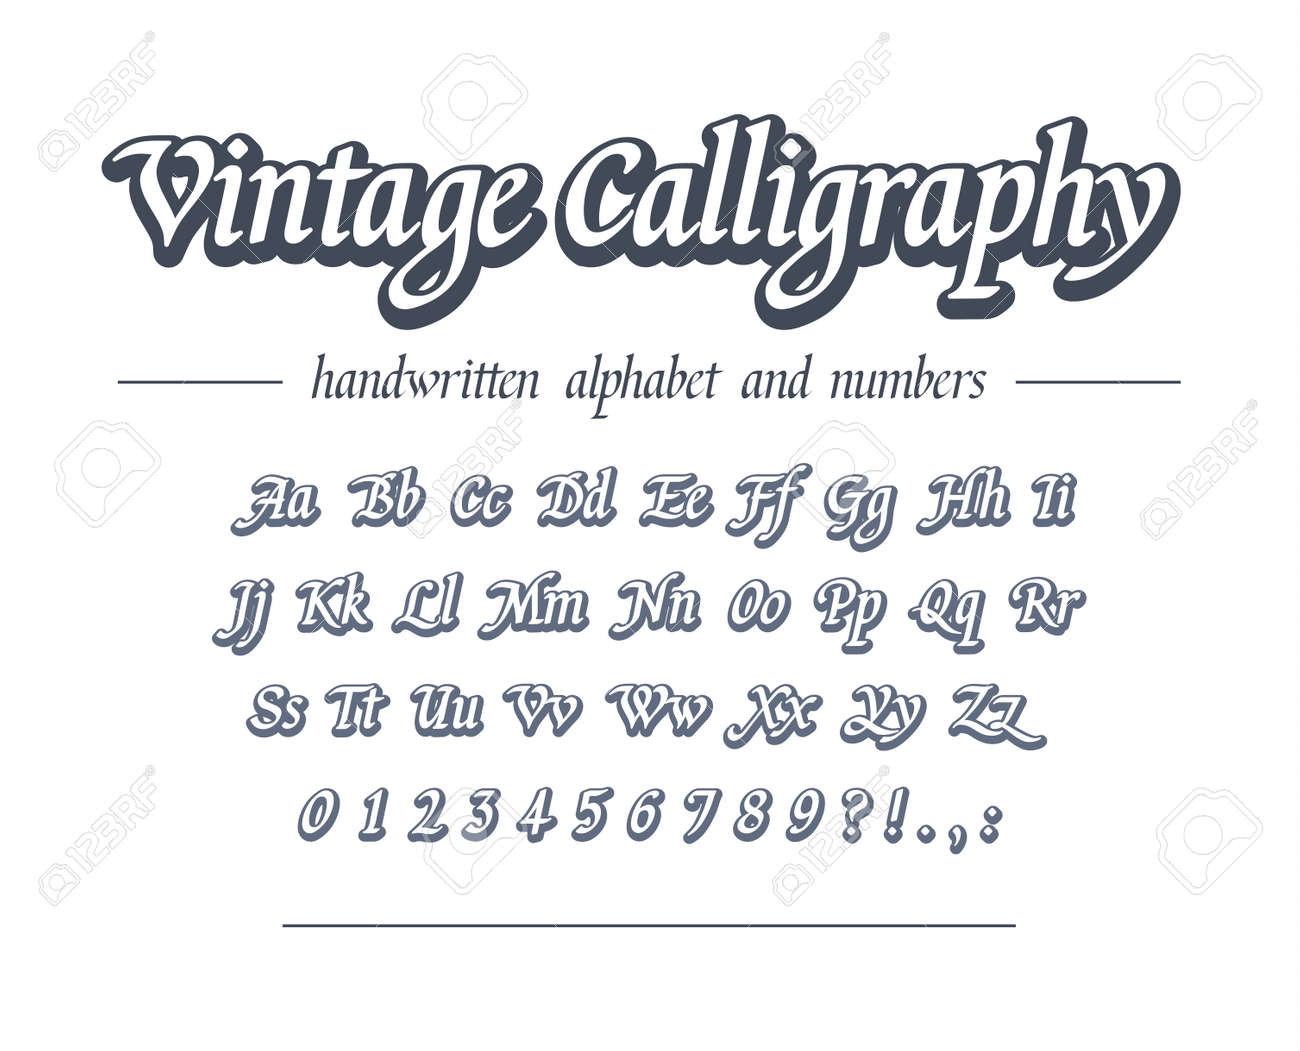 Vintage Calligraphy Hand Drawn Outline Alphabet Universal Handwritten Royalty Free Cliparts Vectors And Stock Illustration Image 129433707